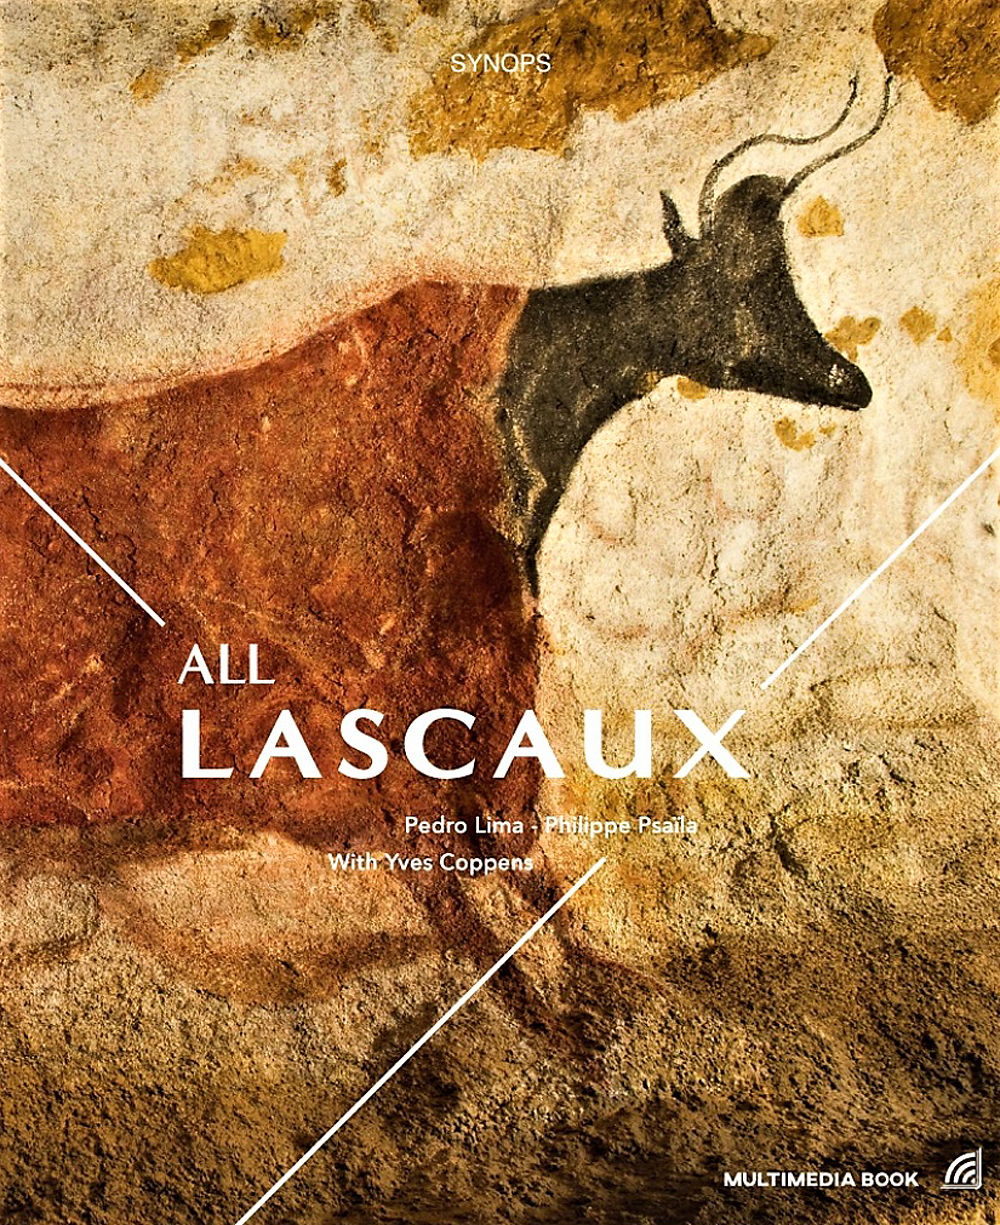 New publication: All Lascaux by Pedro Lima and Philippe Psaïla, with Yves Coppens